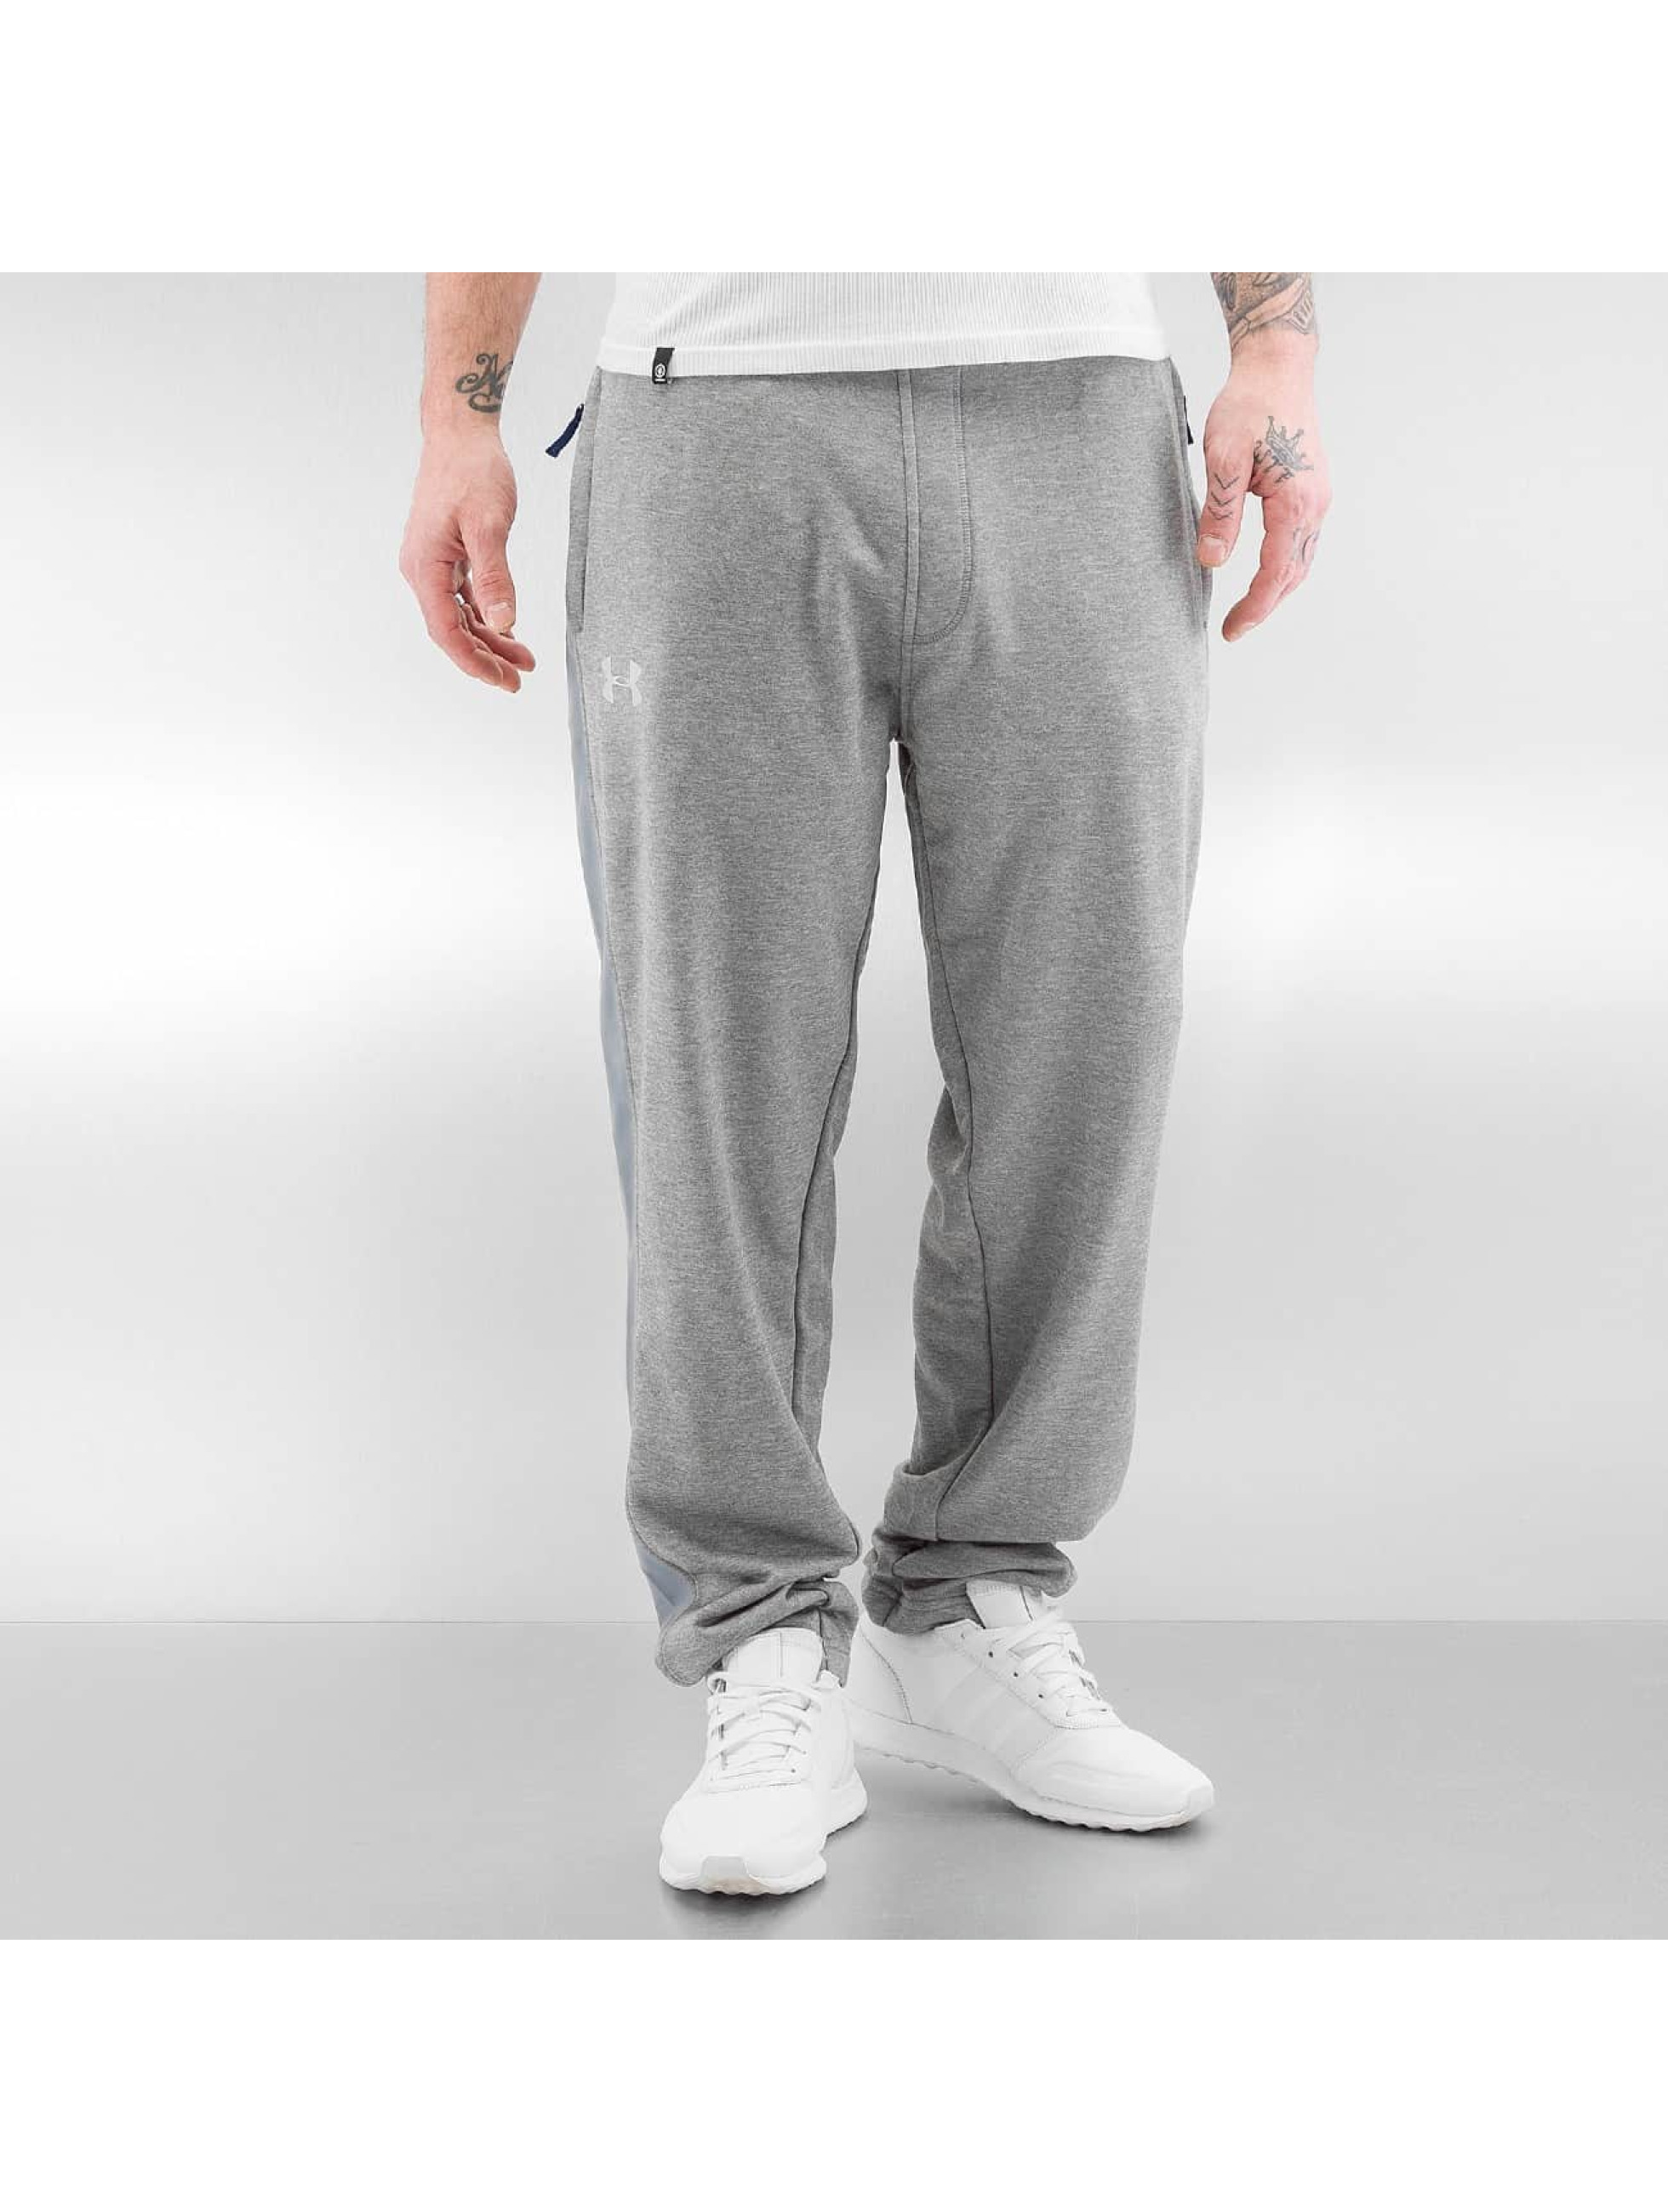 Under Armour Männer Jogginghose Tech Terry in grau